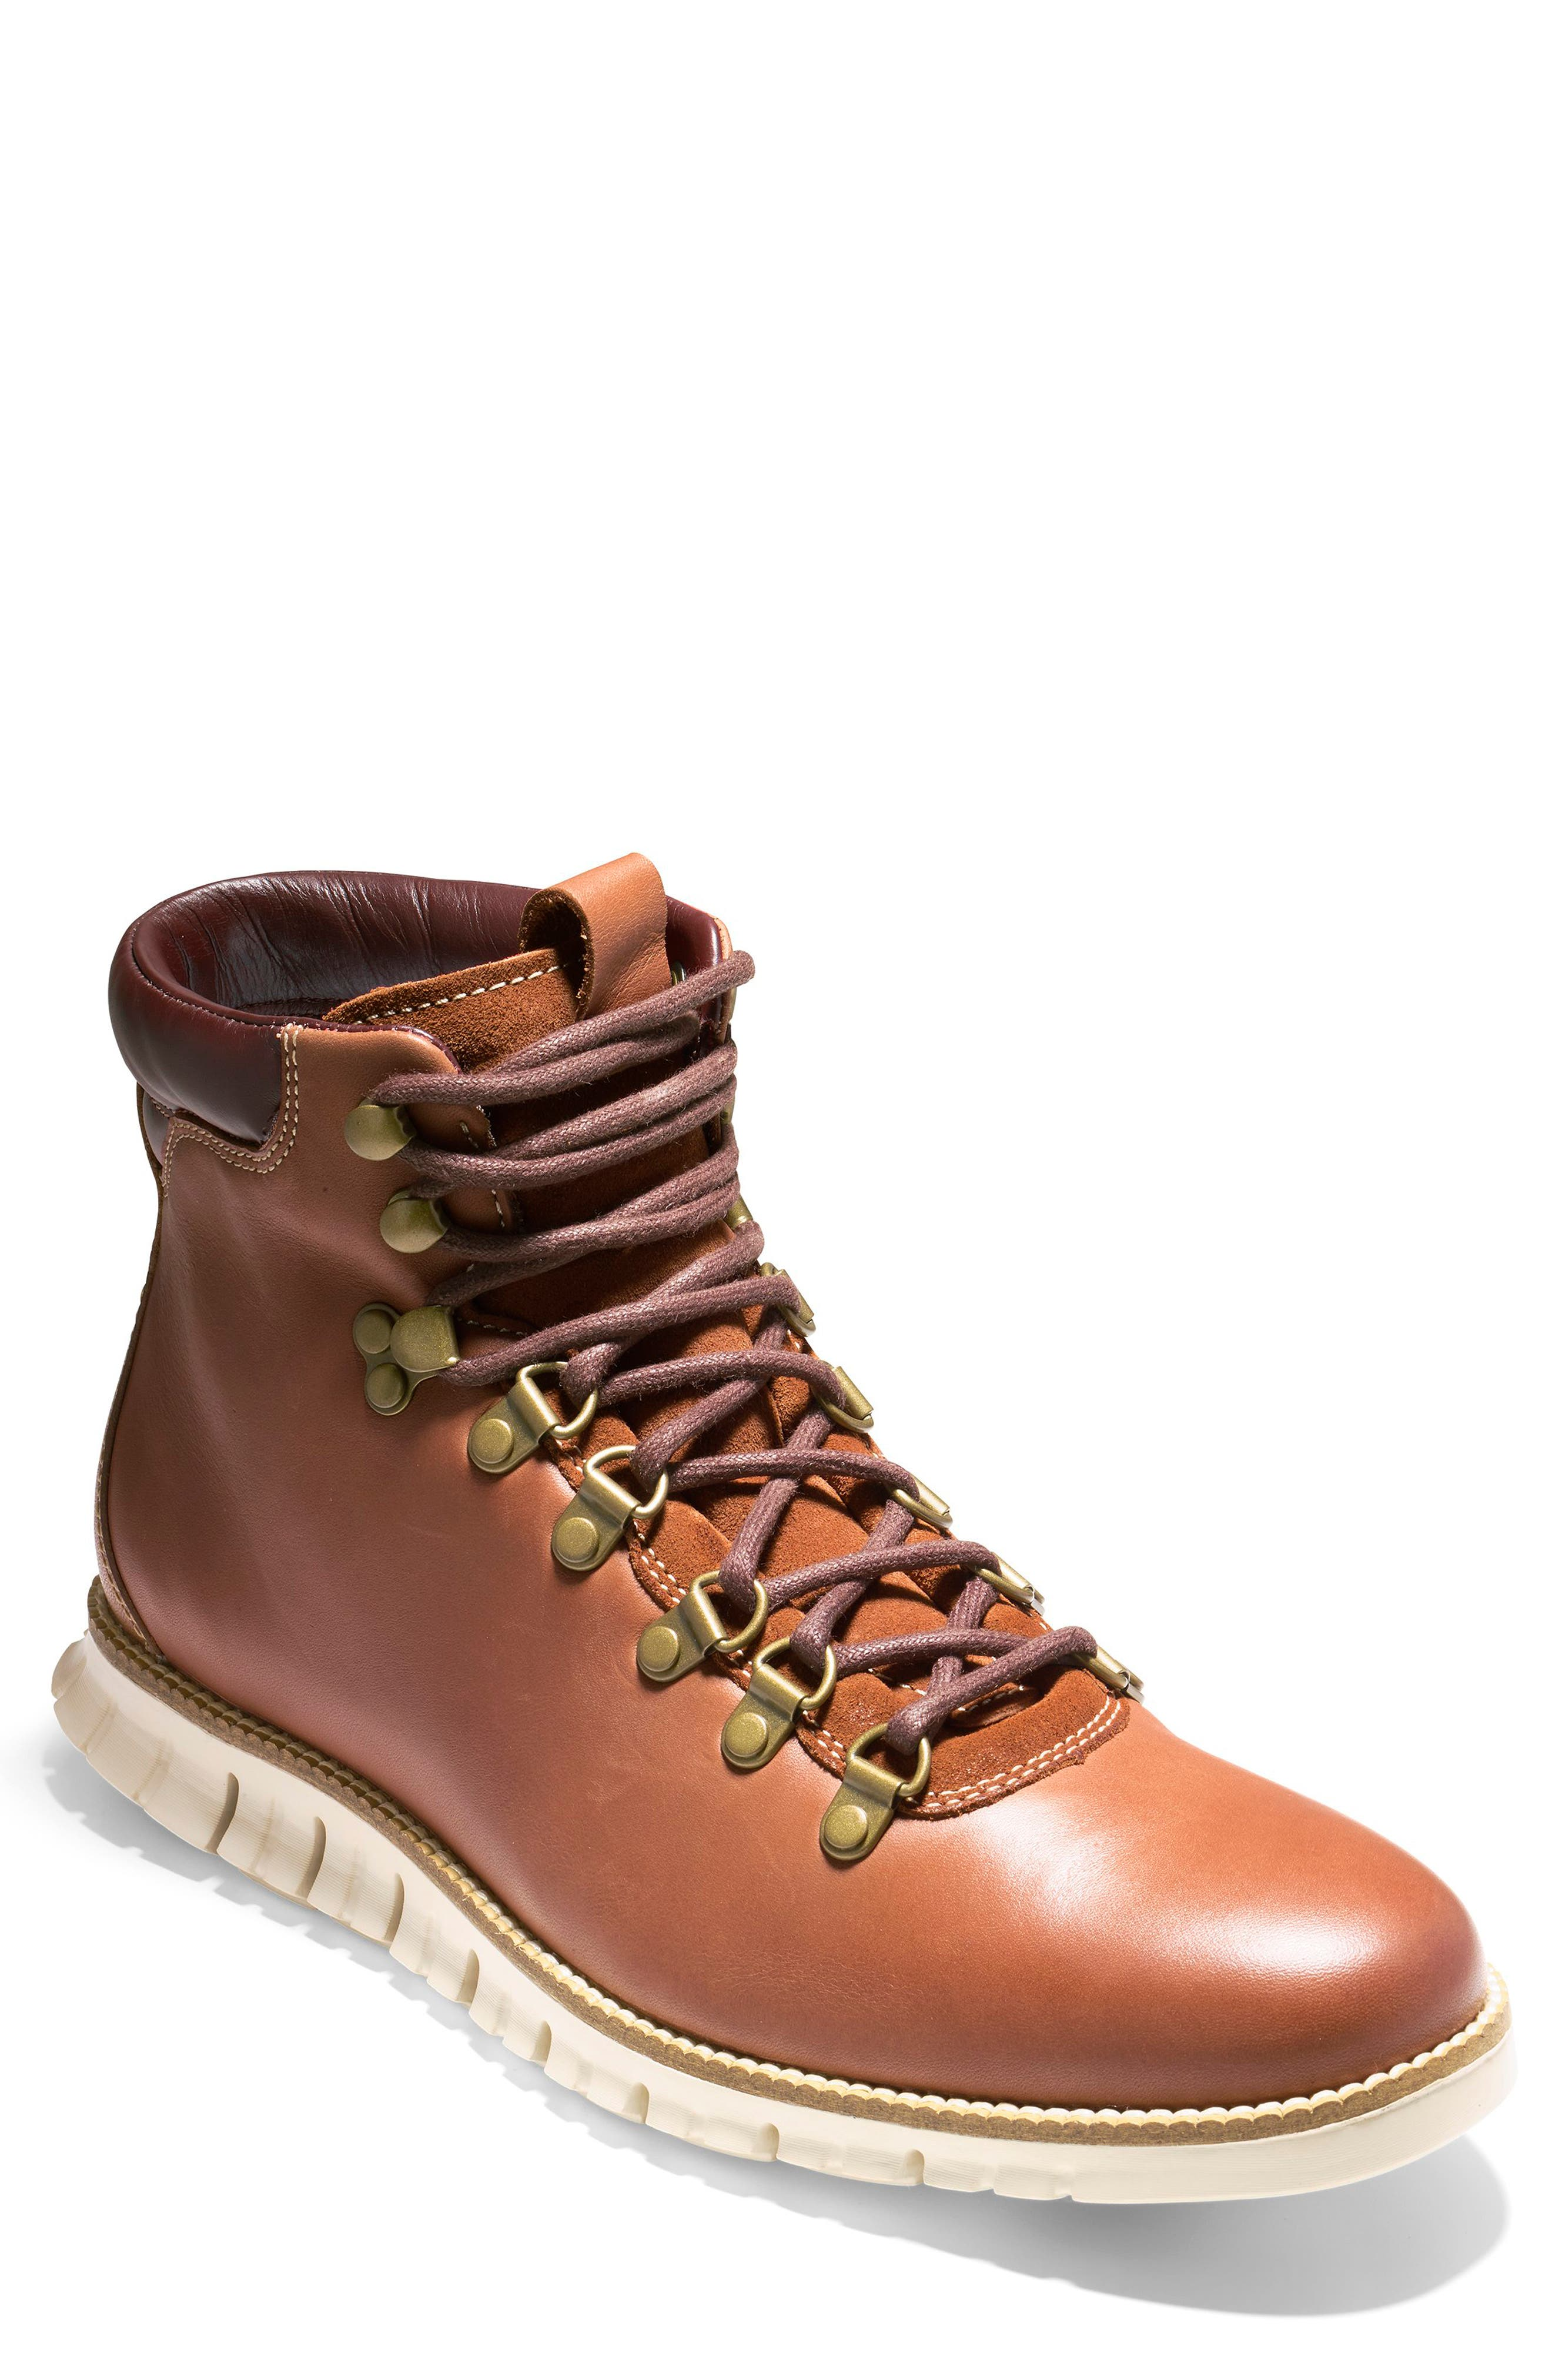 COLE HAAN ZeroGrand Water Resistant Hiker Boot, Main, color, WOODBURY / IVORY LEATHER